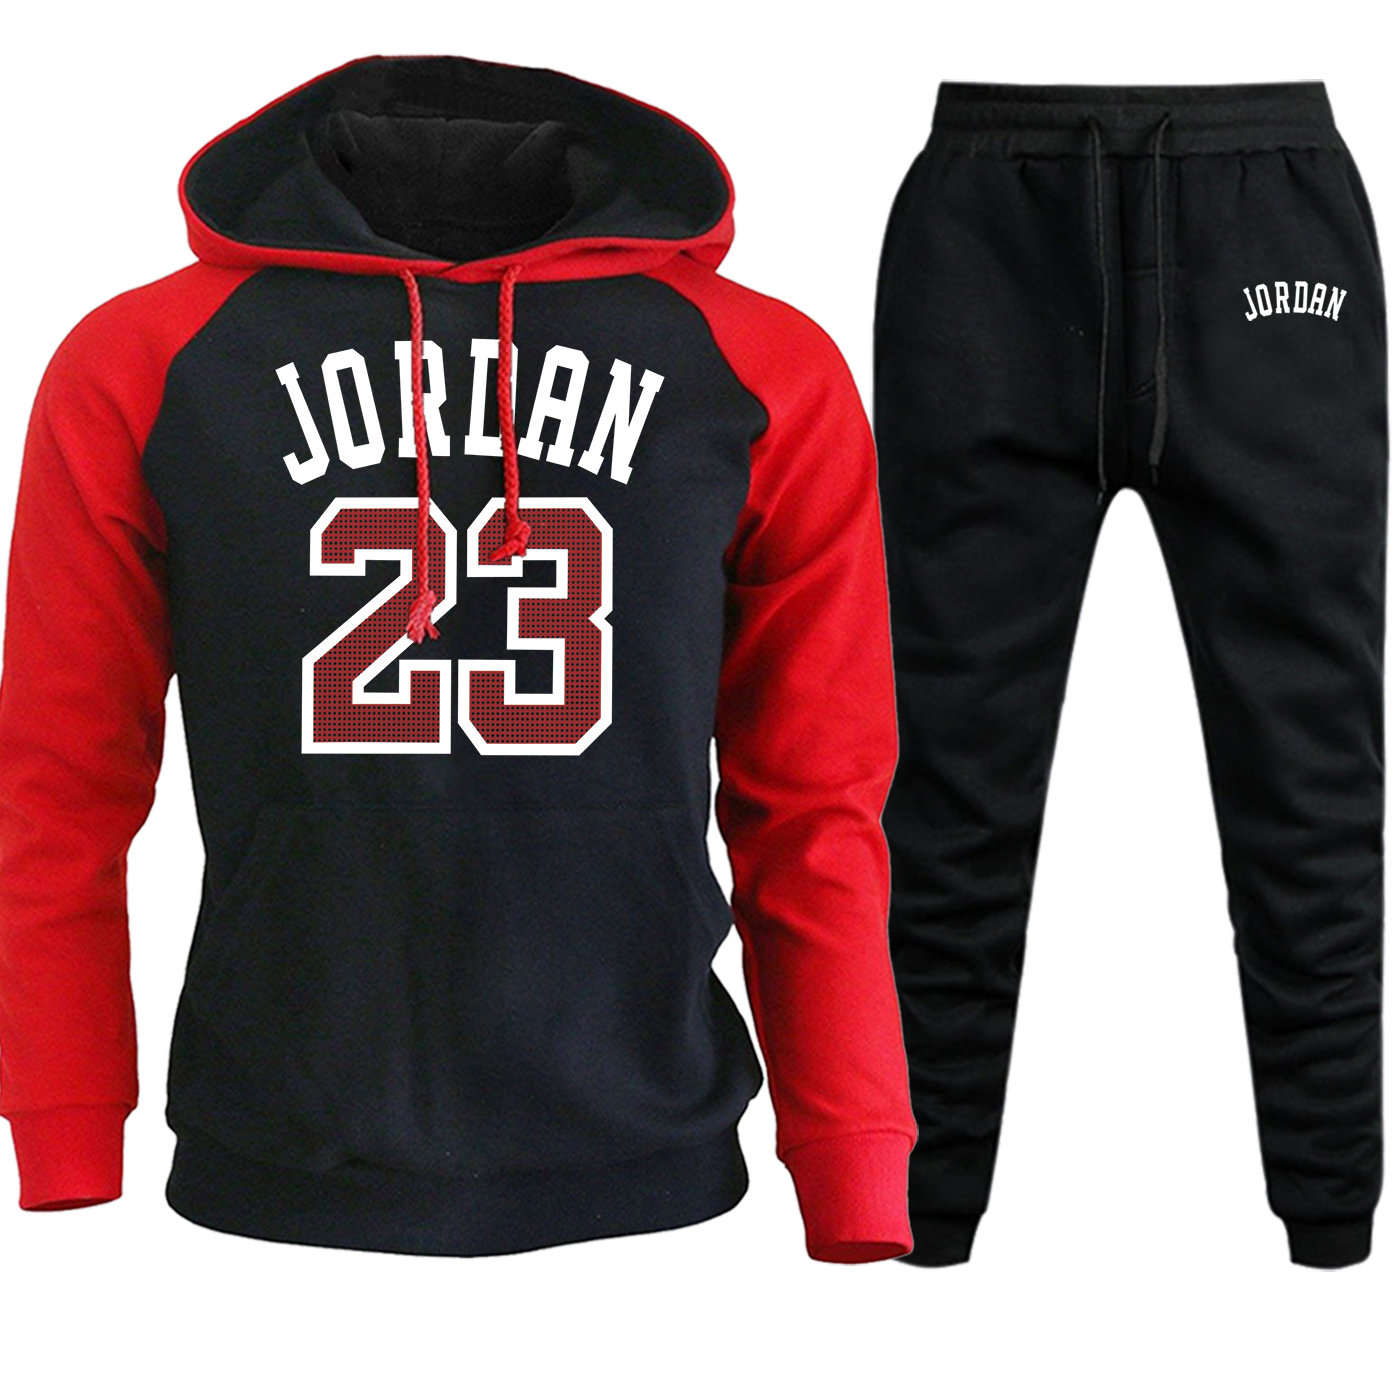 Jordan 23 Raglan Men Hoodie Sweatshirts Autumn Winter 2019 New Hip Hop Casual Pullover Suit Male Fleece Hooded+Pants 2 Piece Set